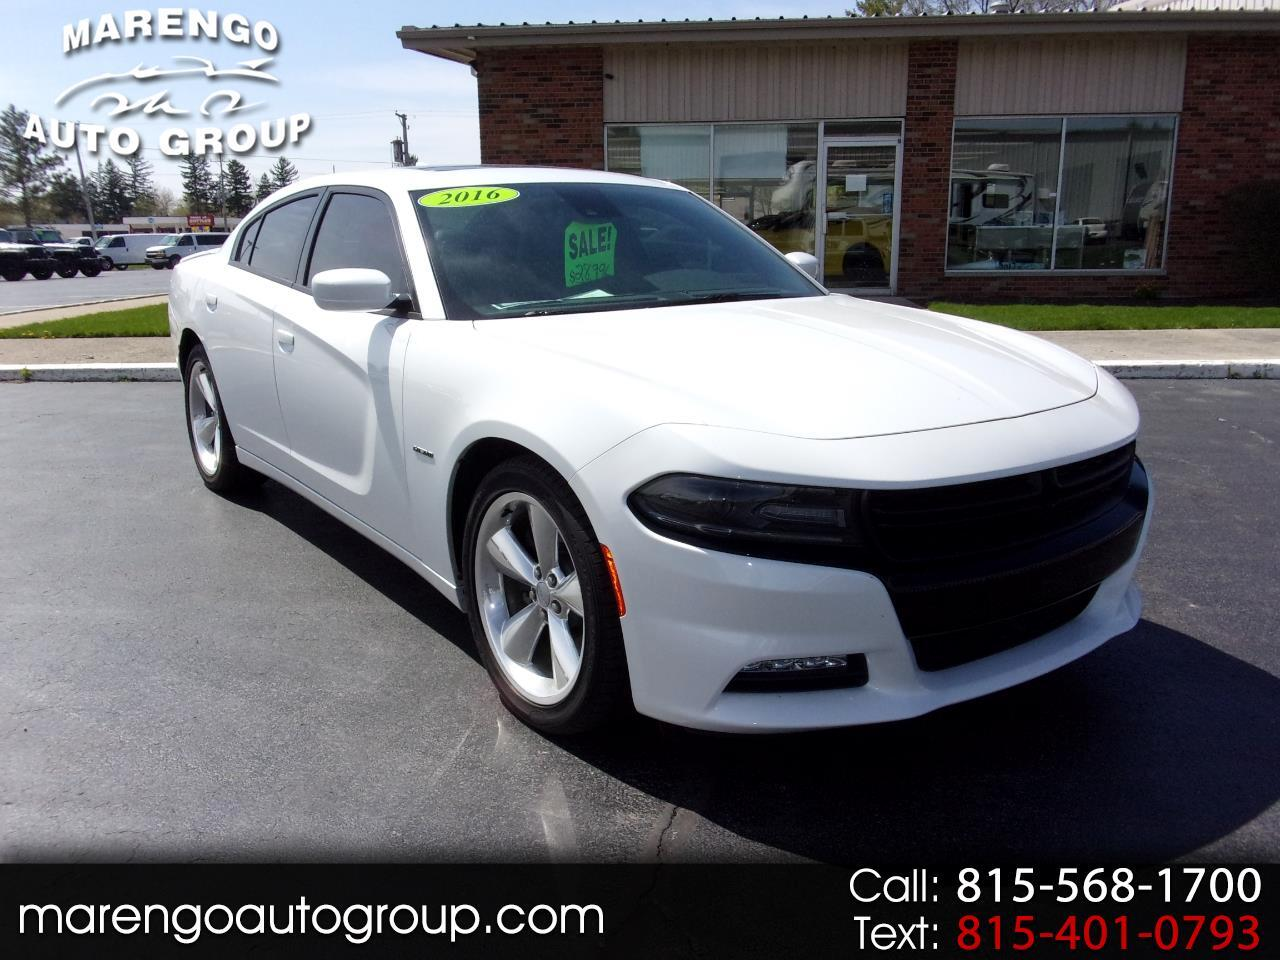 2016 Dodge Charger 4dr Sdn Road/Track RWD